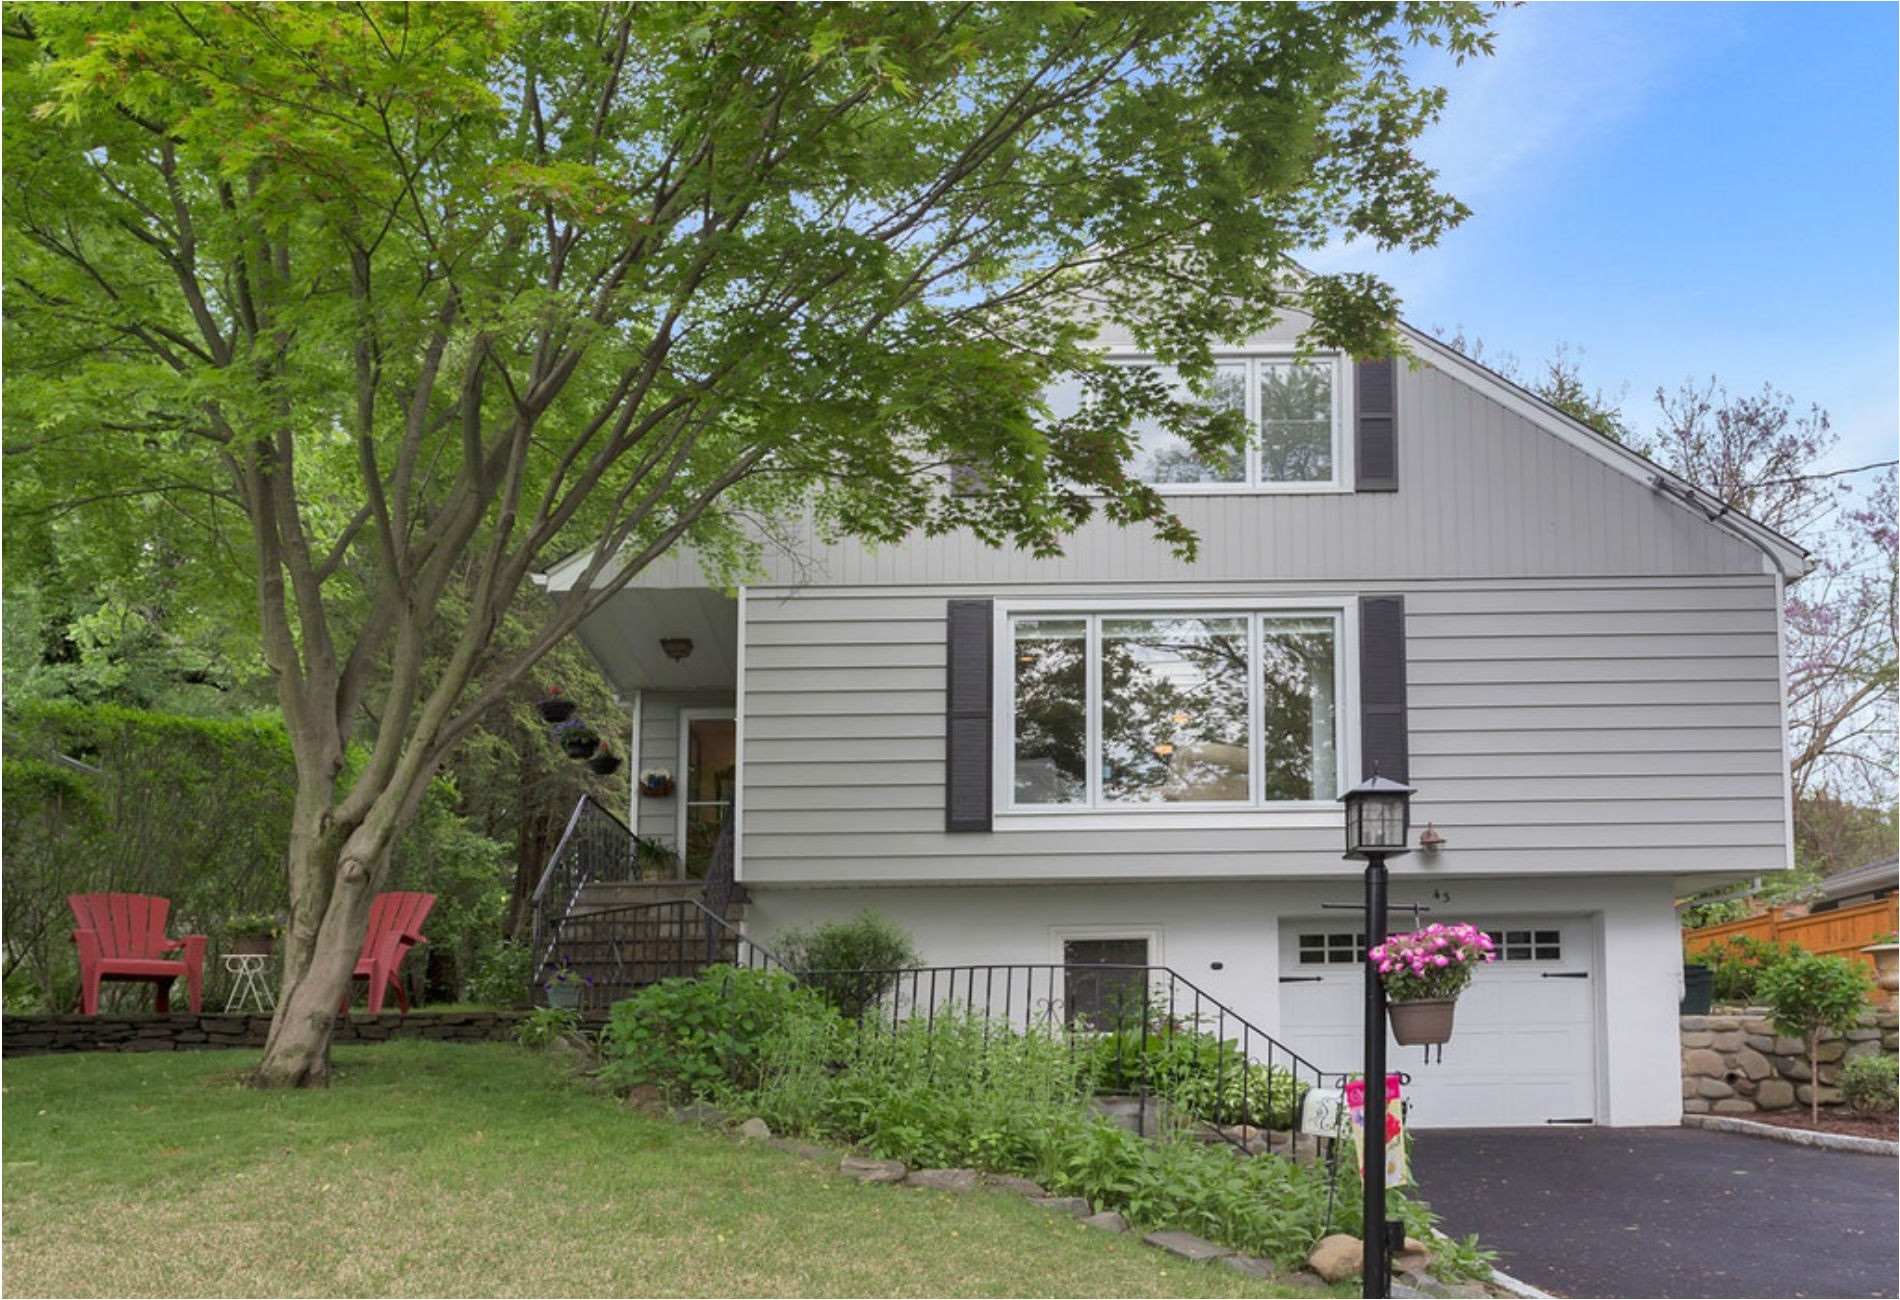 Tag Sales Westchester Ny Barbara Abram Real Estate Agent In Westchester Ny Rivertowns L